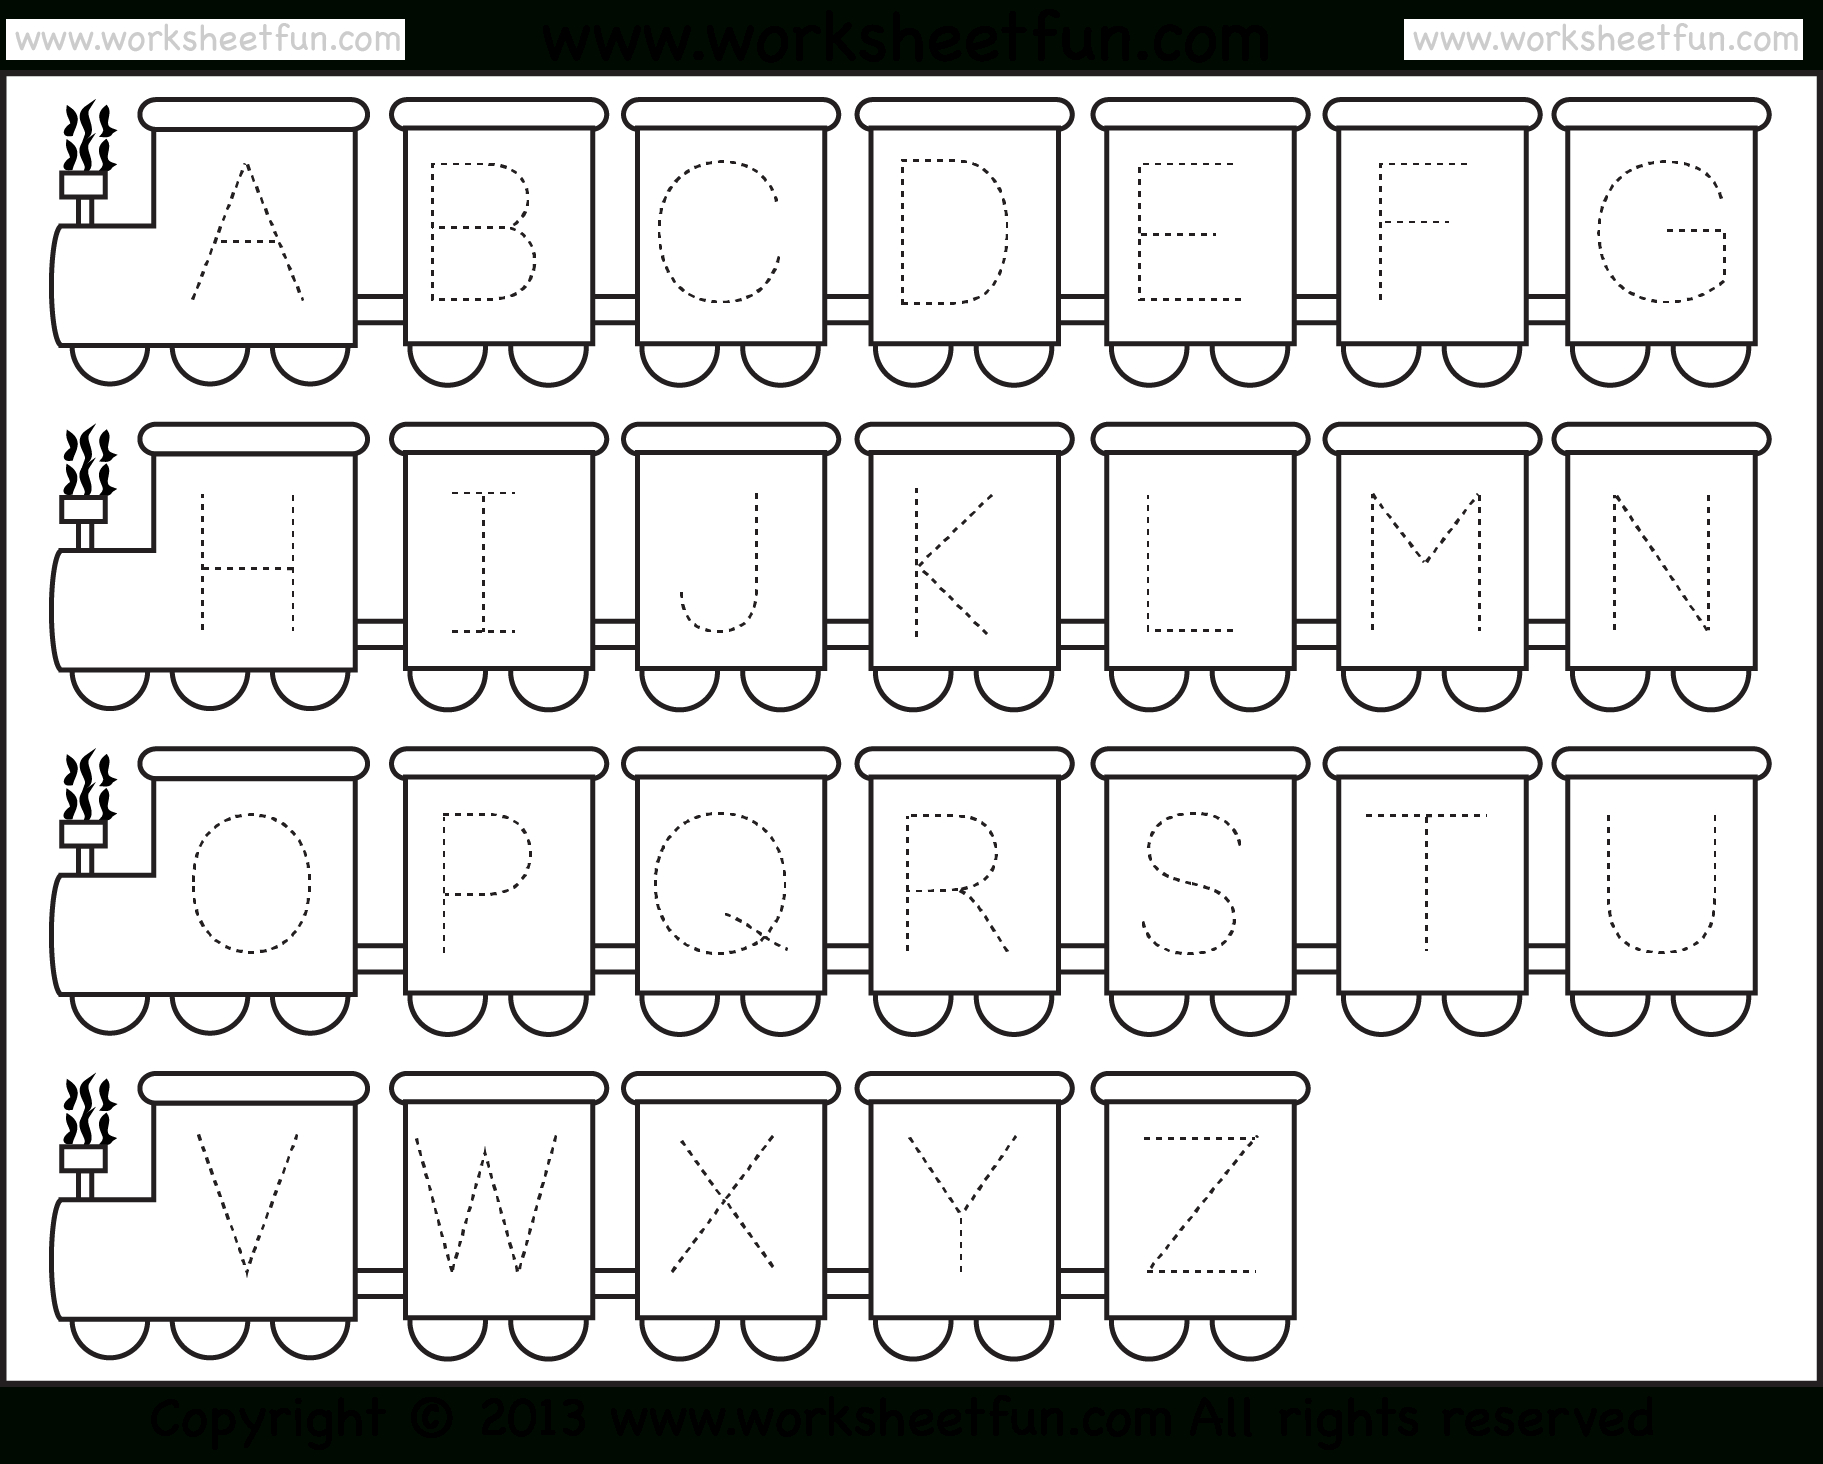 Letter Tracing Worksheet – Train Theme / Free Printable Worksheets   Free Printable Alphabet Tracing Worksheets